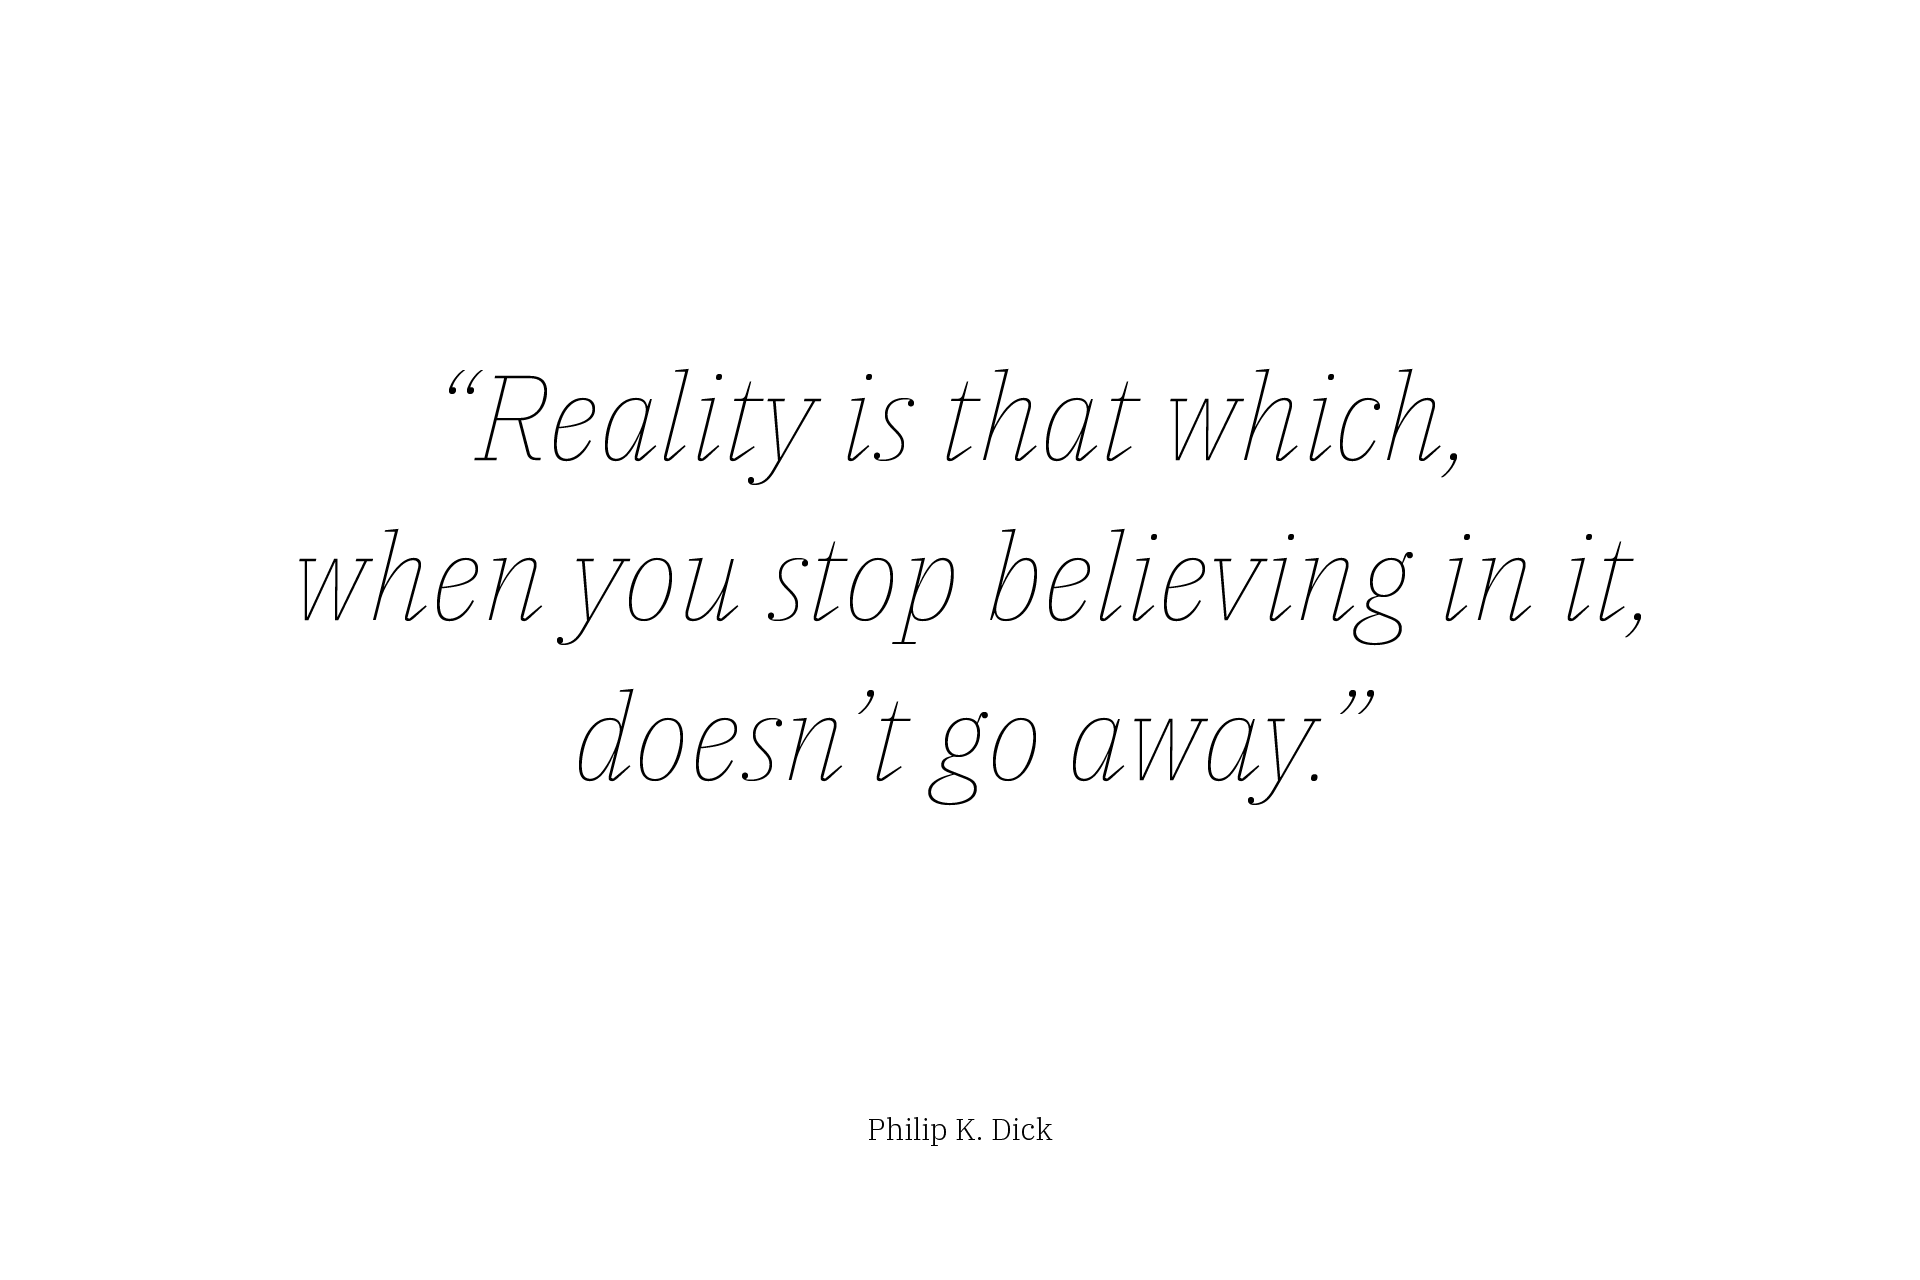 """Reality is that which, when you stop believing in it, doesn't go away."" — Philip K. Dick"